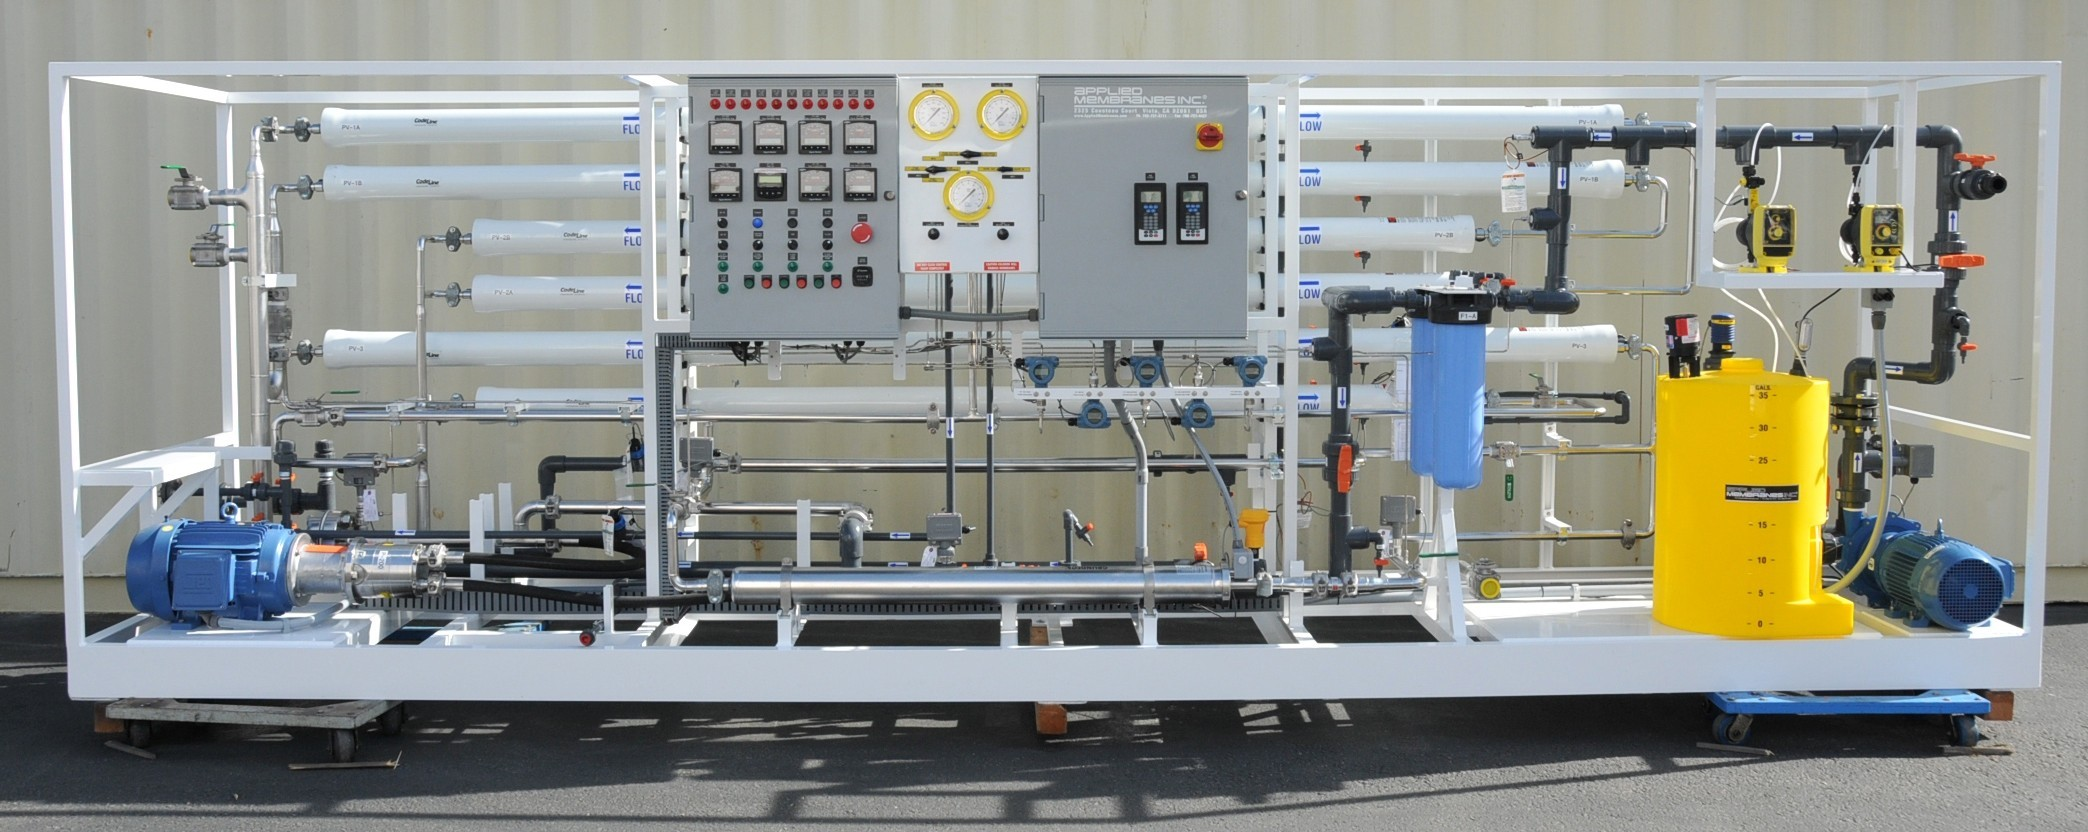 SWRO System for Desalination Pilot Testing